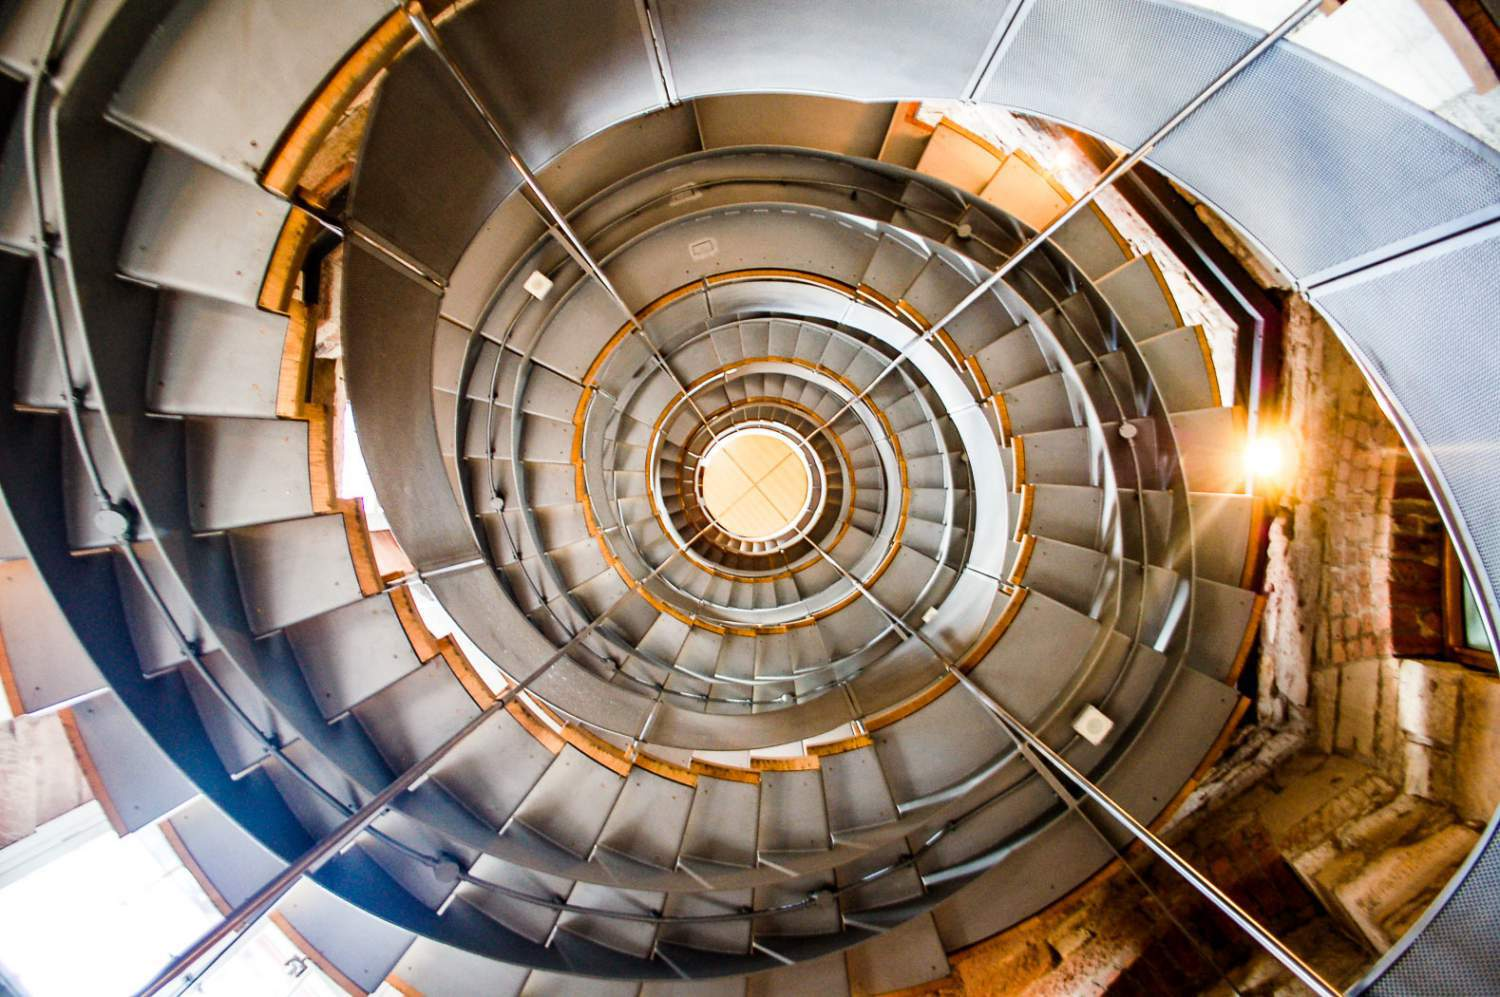 Lighthouse's staircase in Glasgow, Scotland